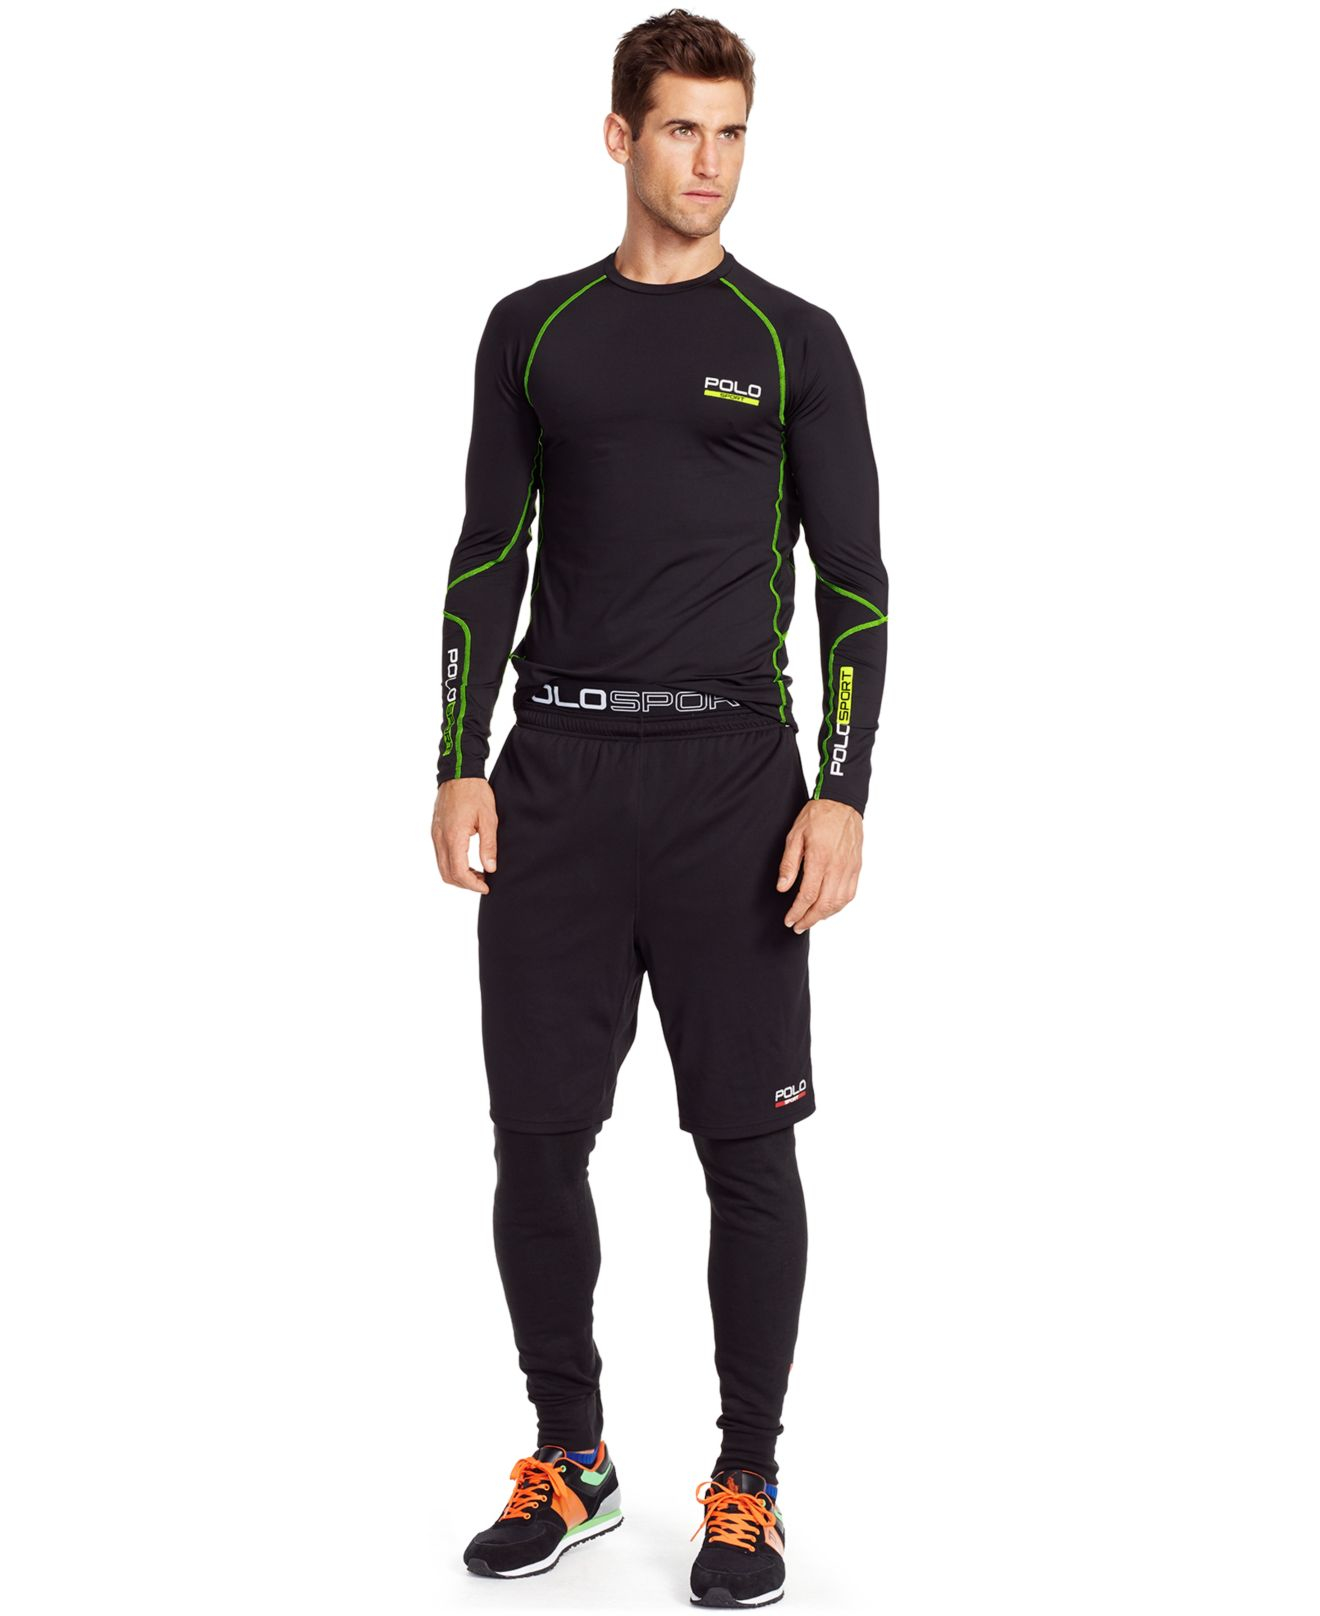 lyst polo ralph lauren all sport compression shirt in black for men. Black Bedroom Furniture Sets. Home Design Ideas